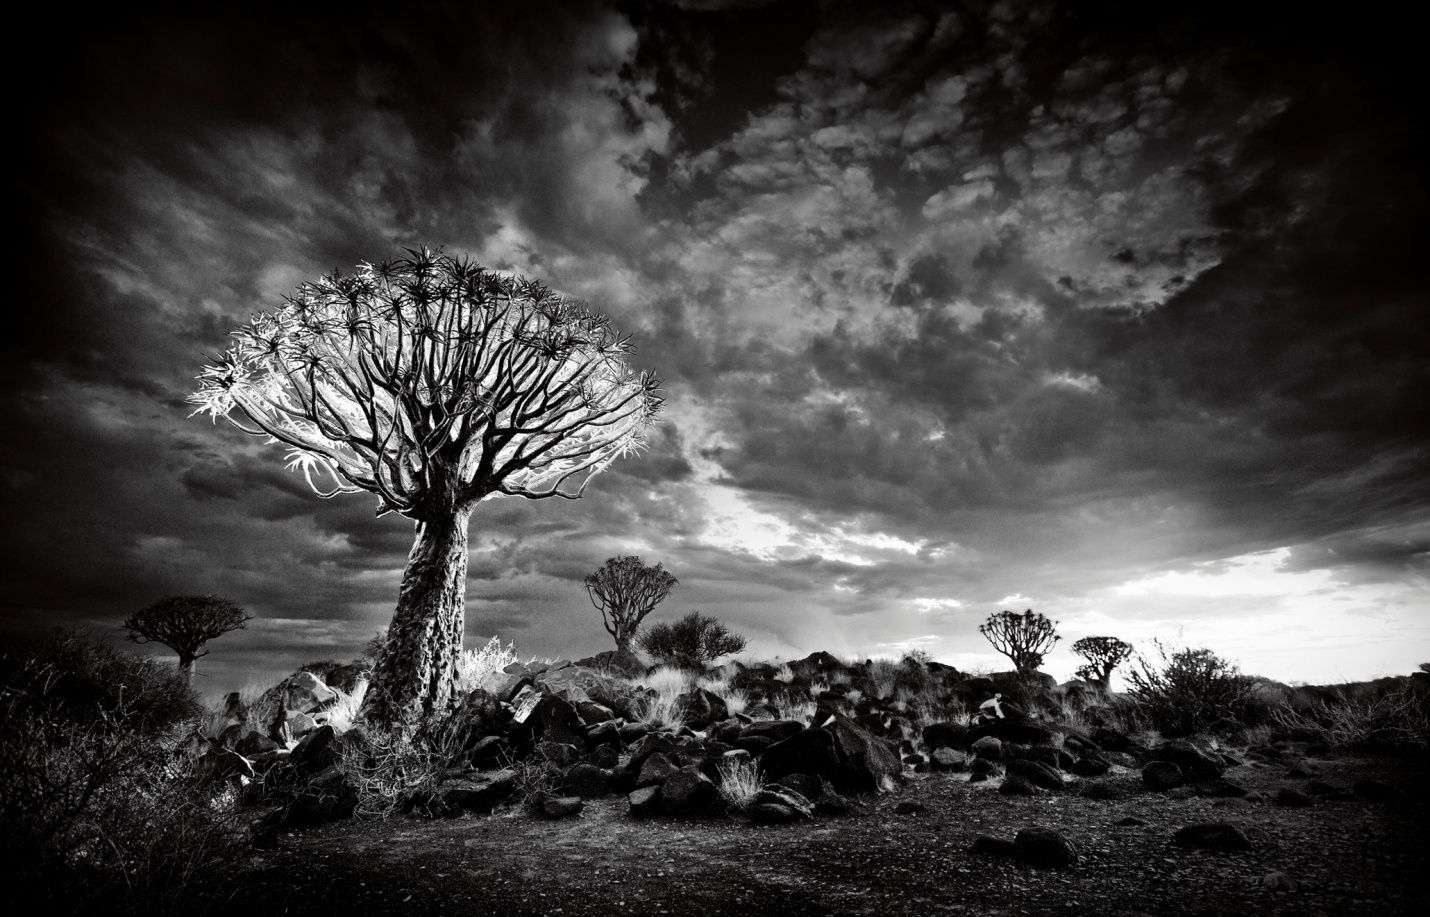 A quiver tree under a cloudy sky, NAMIBIA. Photograph: Heinrich Van Den Berg/Barcroft Media